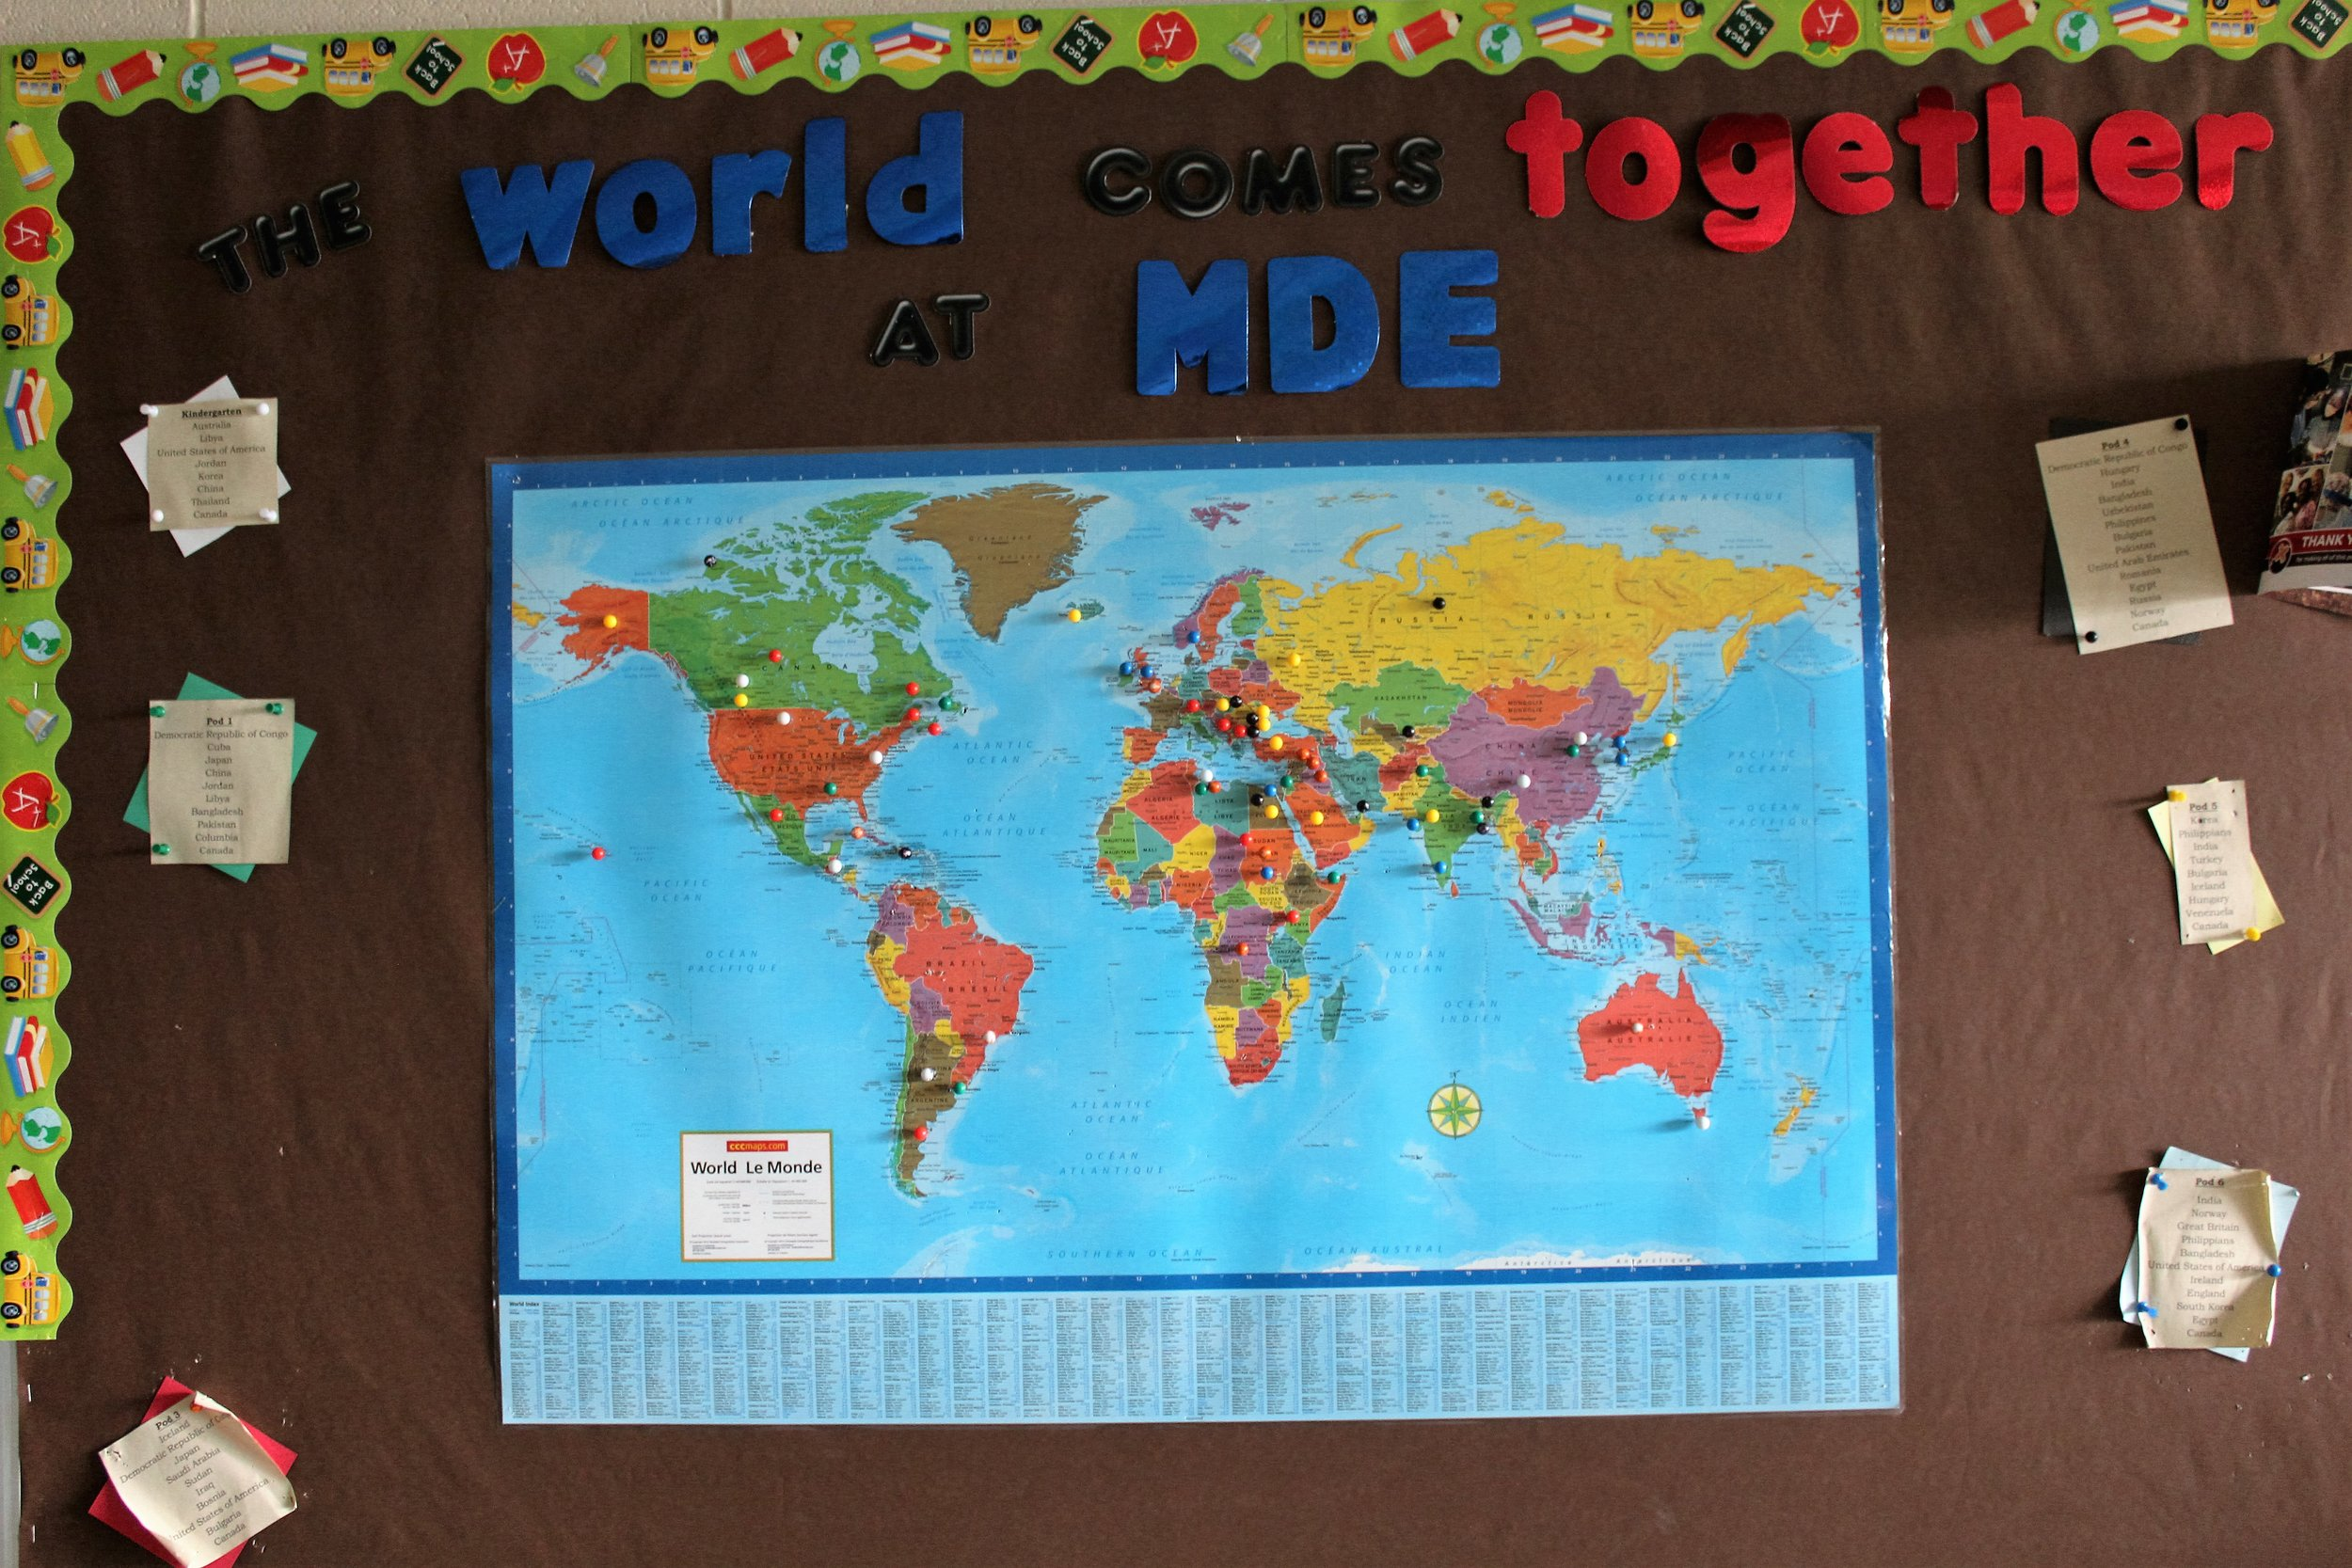 """The Bulletin Board in our main entrance changes every month or so. This month we are focusing on the many countries that make up the population of our school. All teachers discuss the variety of cultures and countries represented within their own classroom and then submit them to our gym teacher, who then represents the countries identified with colourful push pins on the map of the world. The caption: """"The World Comes Together at MDE"""" helps children to relate their unique connection within the school to that of the world, in general. Children from every classroom can be heard and/or seen pointing out their place in the world as well as commenting on all the places we represent in our own school.  This activity relates to global citizenship because it helps children to see how they, as a school, represent many of the countries in our world. It directly relates our diverse cultures to that of the world, in general. Pretty impressive to see. And, the student-generated comments and discussions related to it are reaffirming as they all feel interconnected and appreciated as members of our school."""